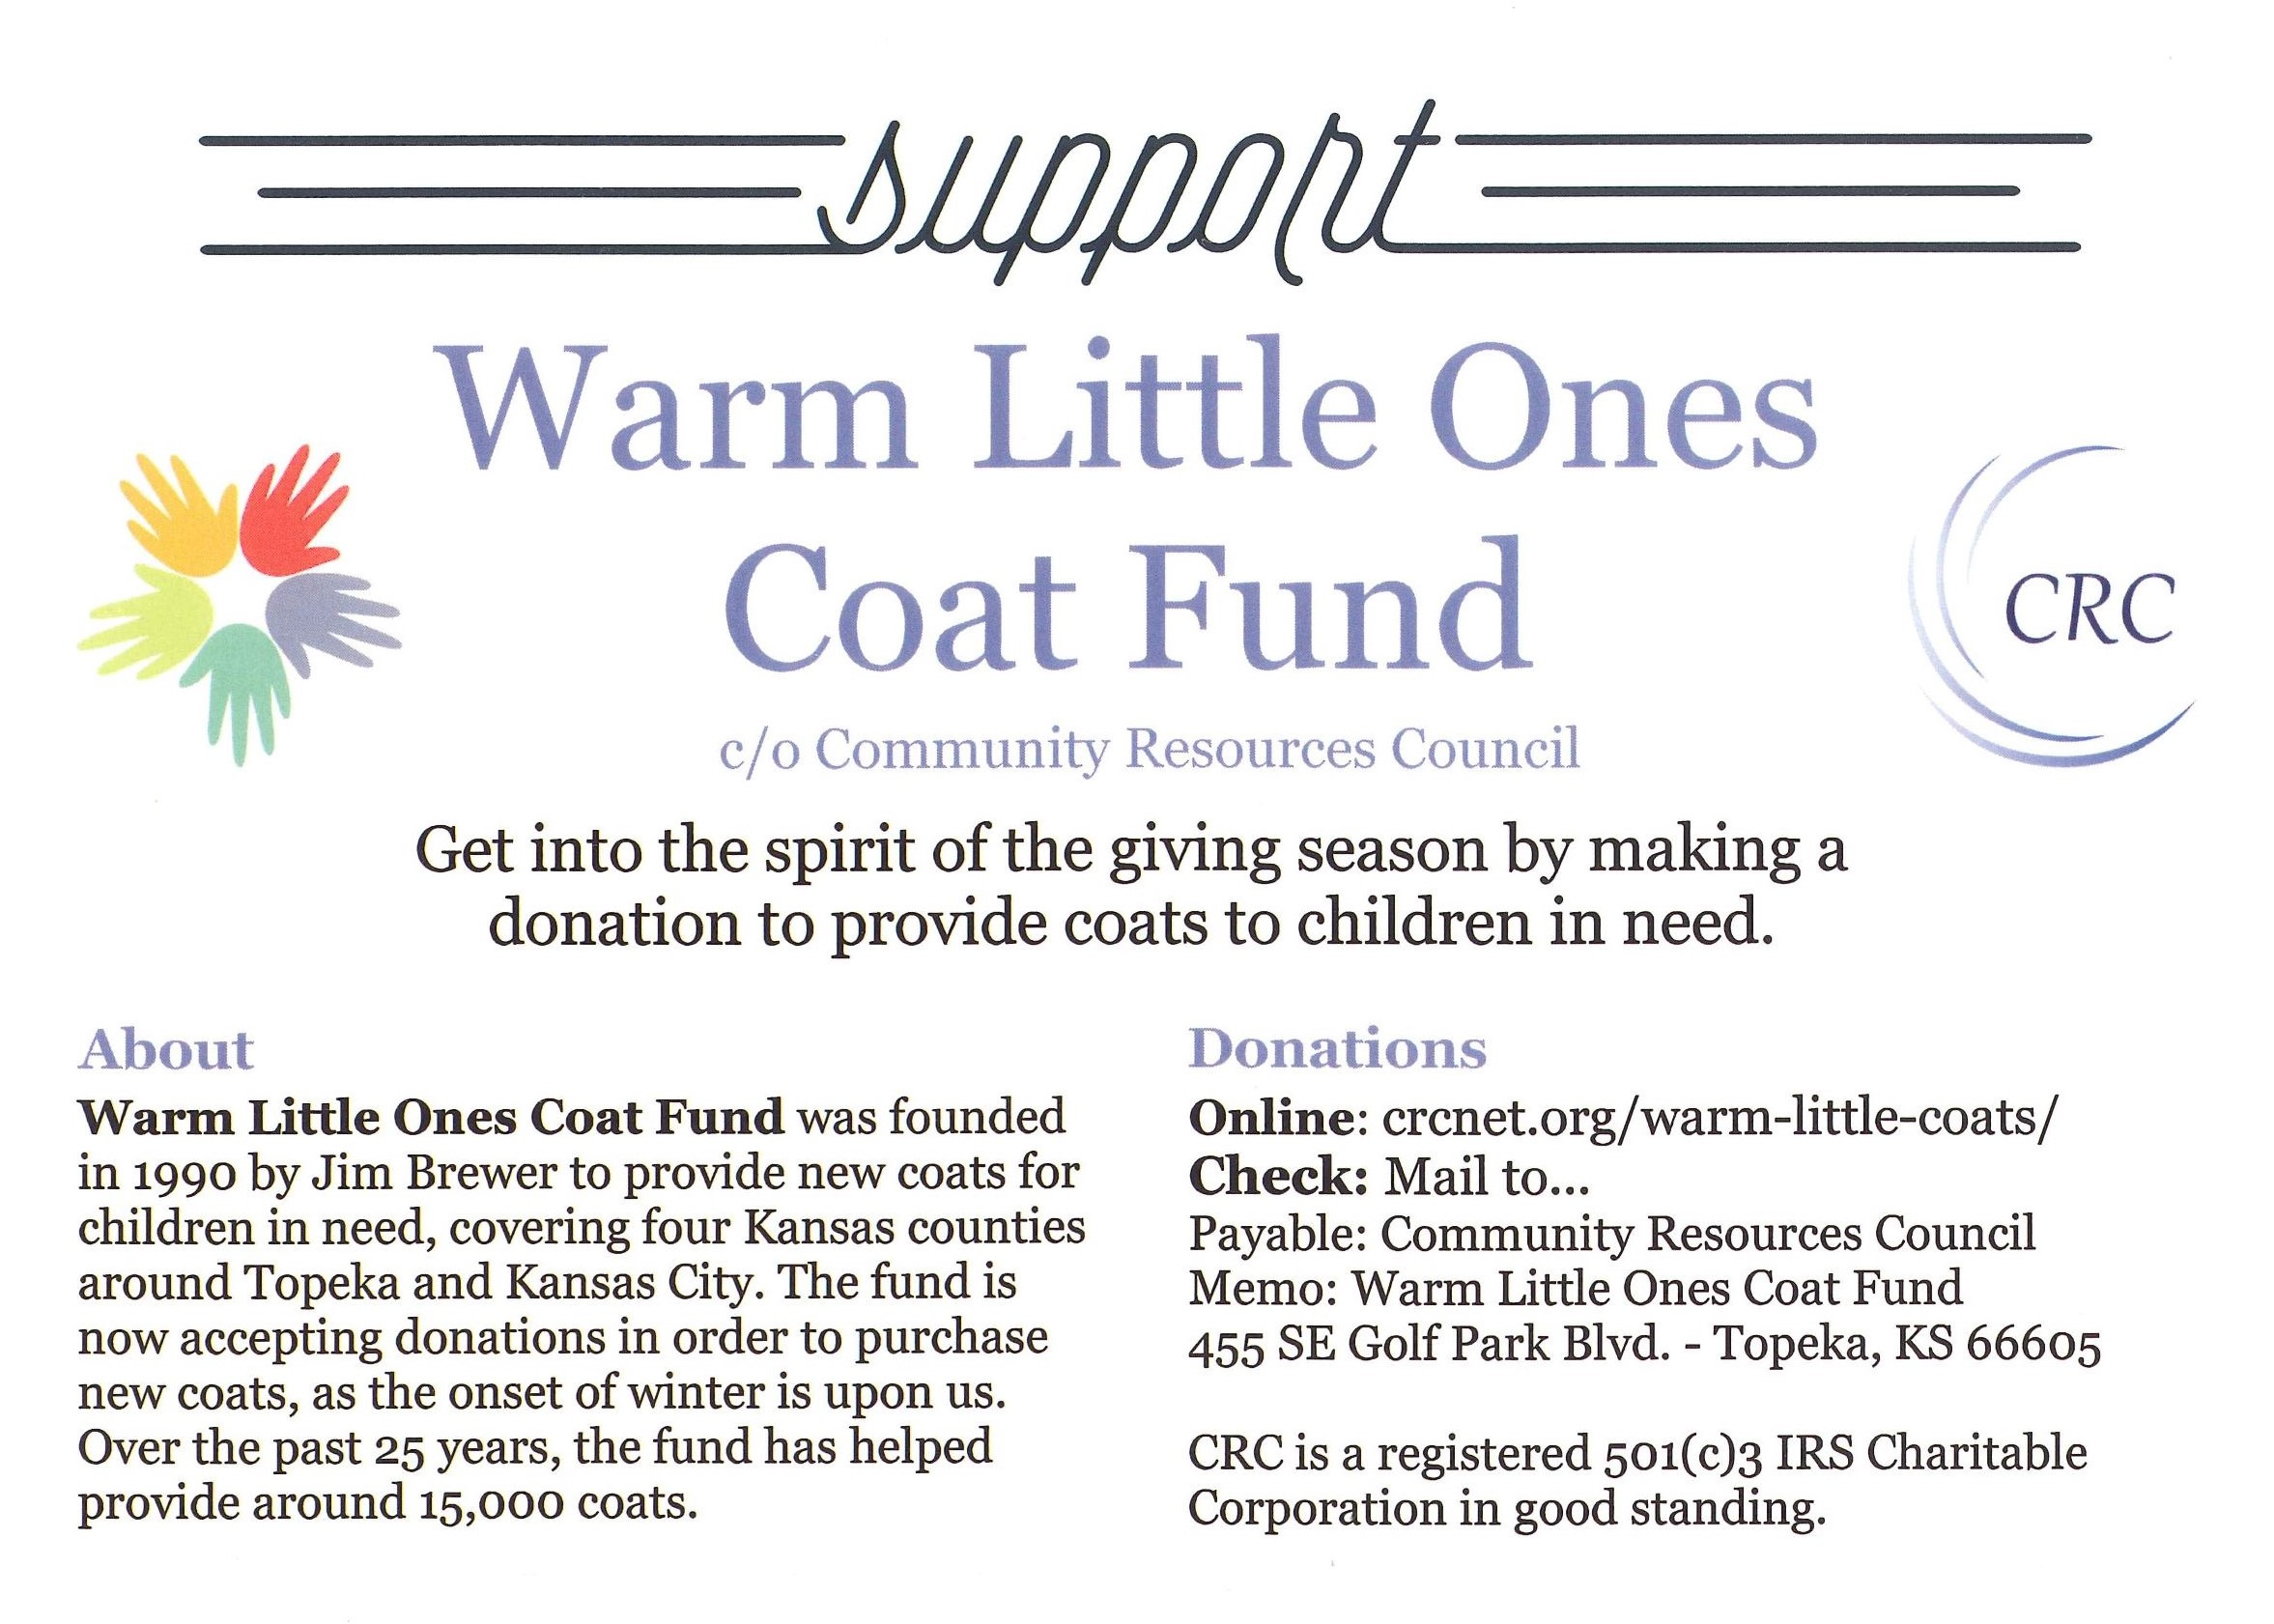 Warm Little Ones Coat Fund